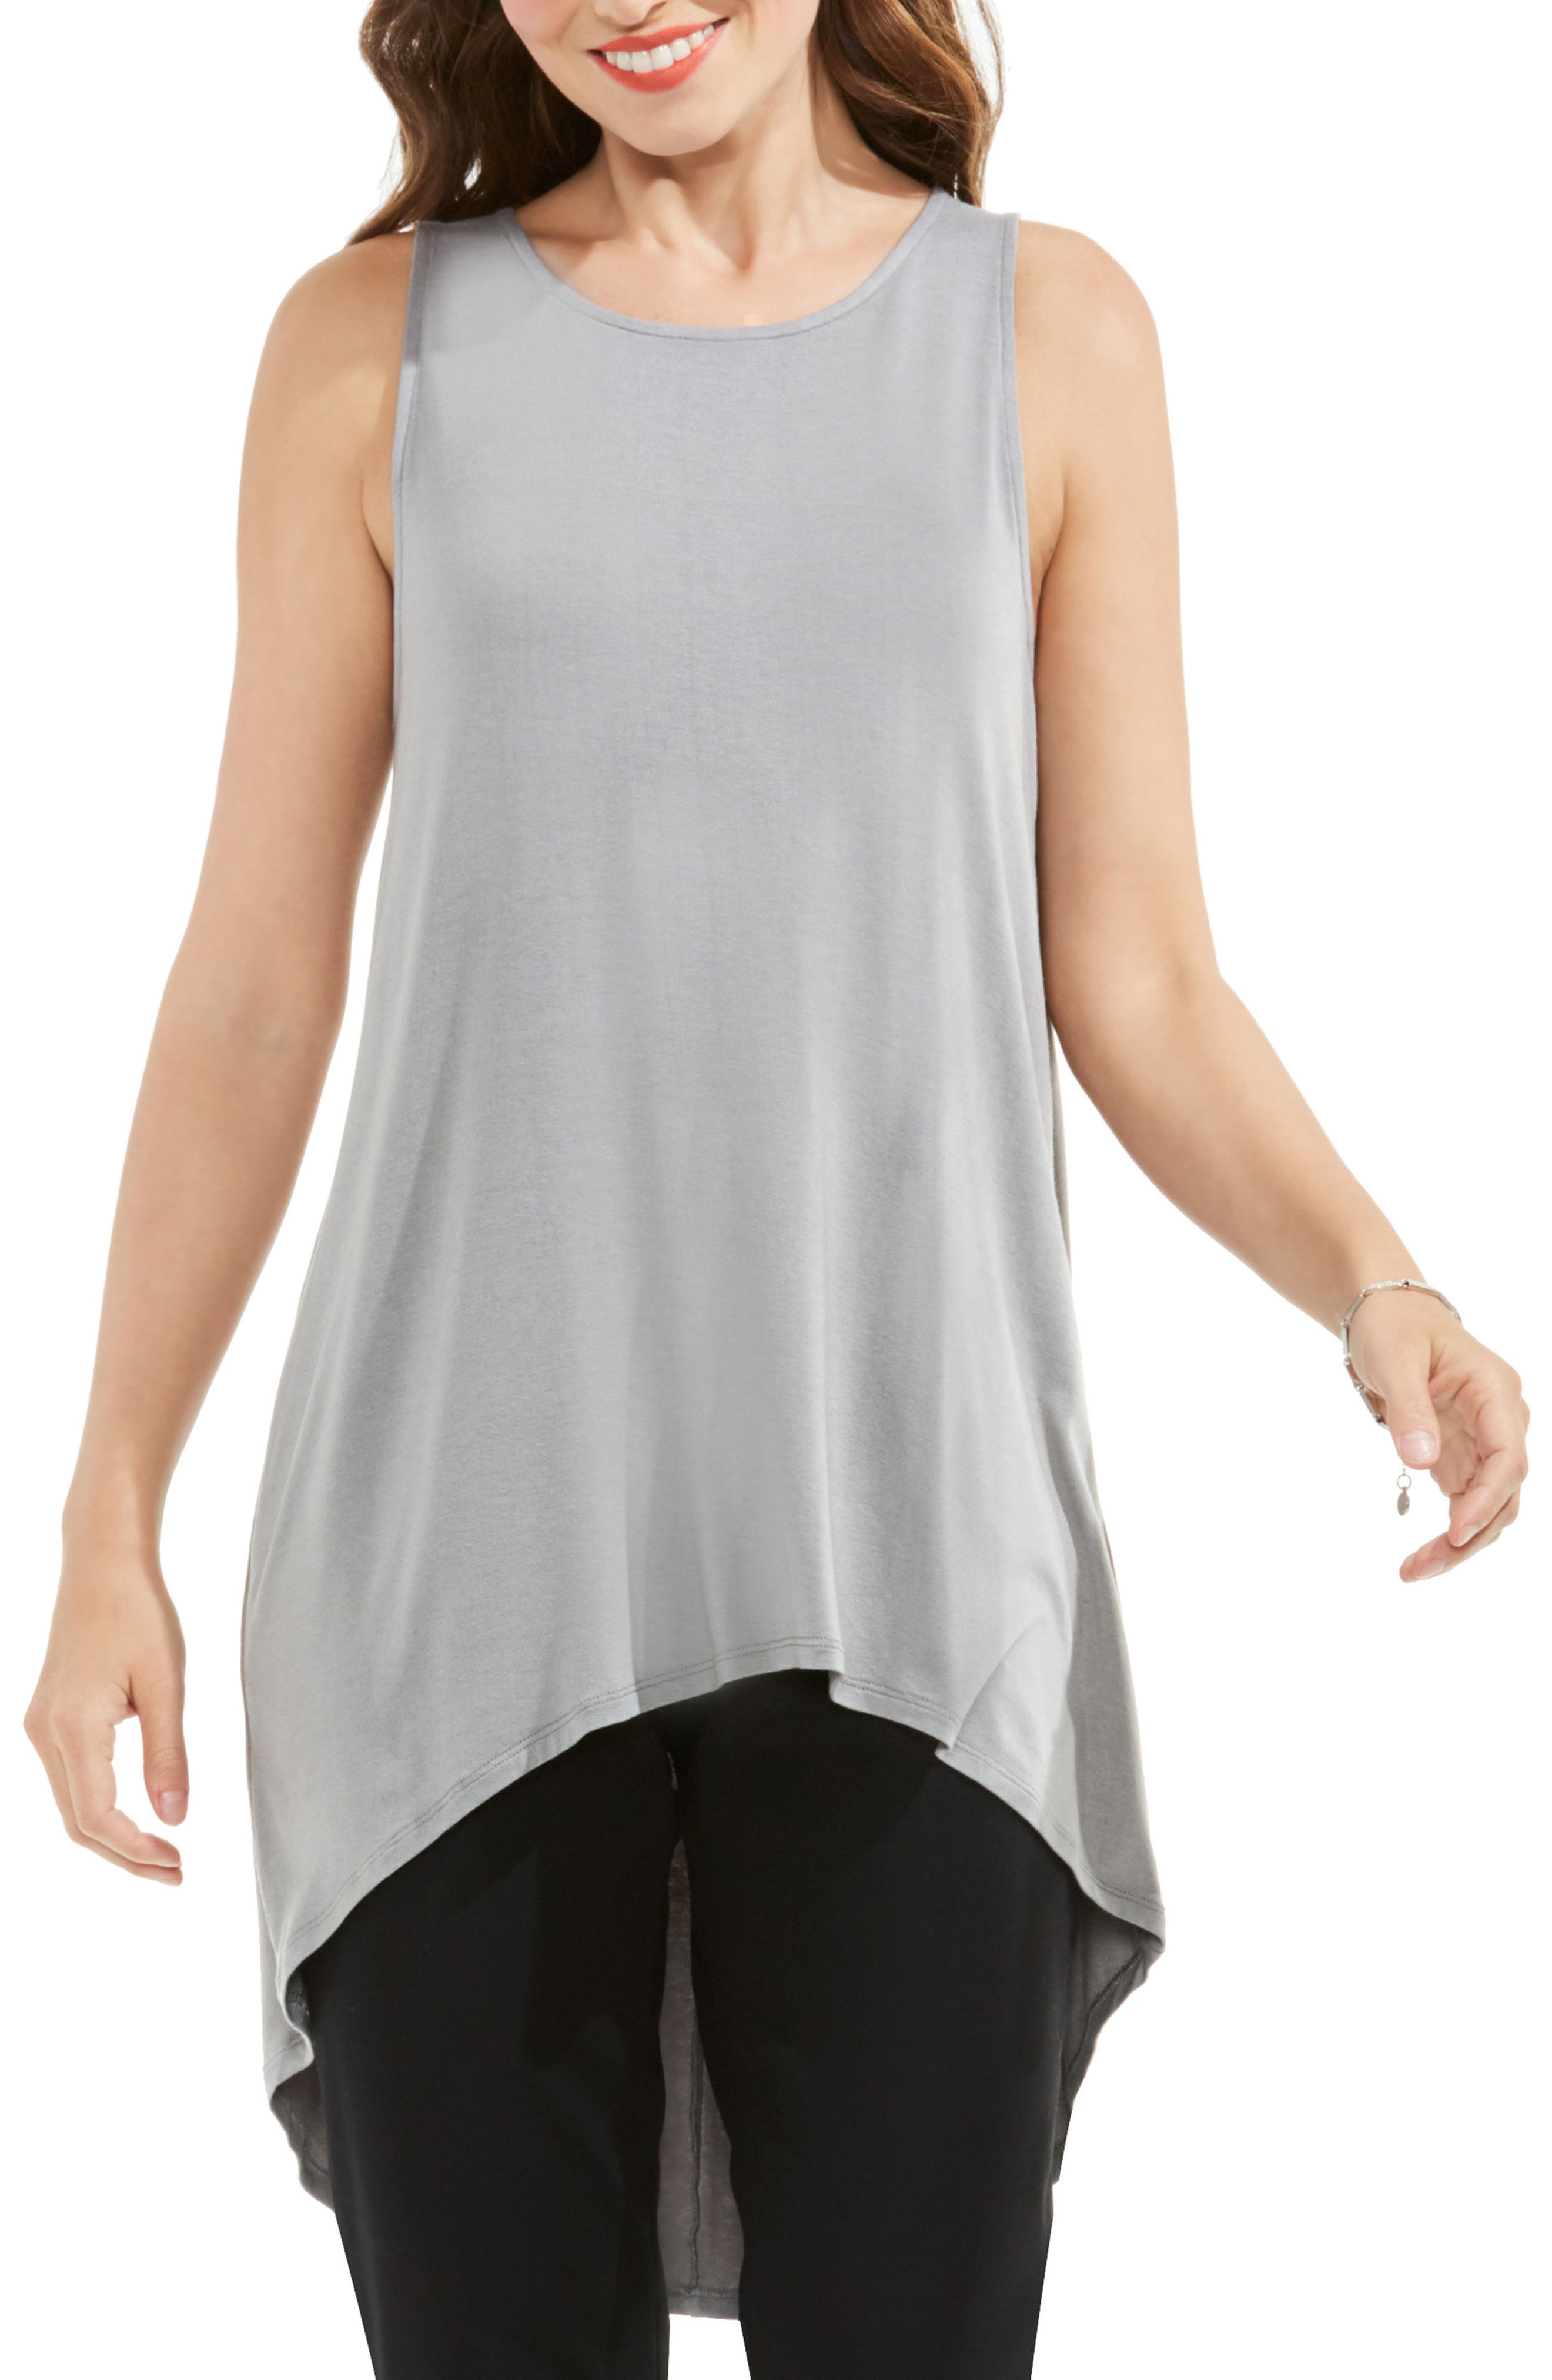 Main Image - Vince Camuto Sleeveless High/Low Top